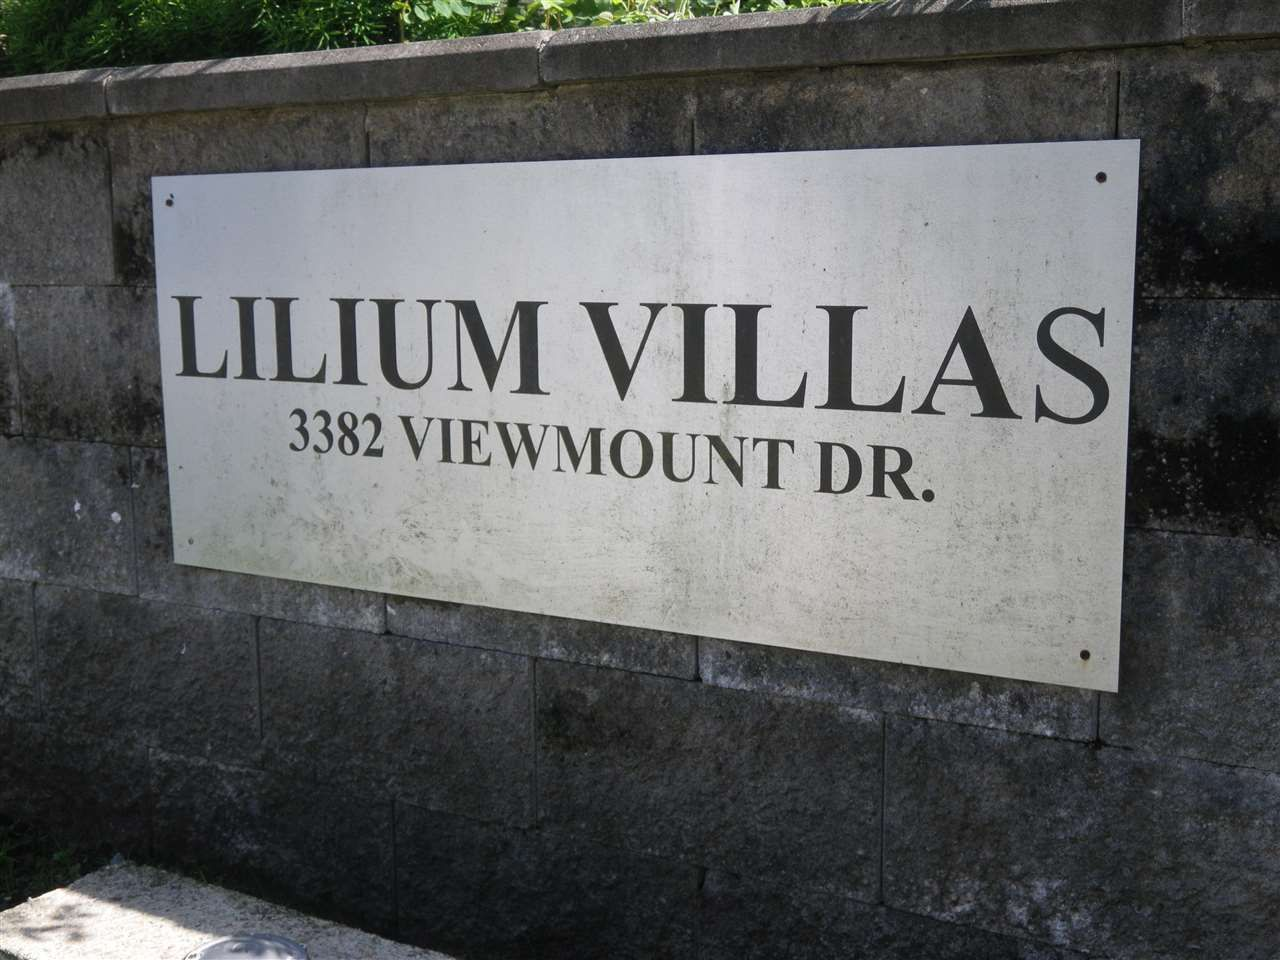 """Photo 20: Photos: 122 3382 VIEWMOUNT Drive in Port Moody: Port Moody Centre Townhouse for sale in """"LILIUM VILLAS"""" : MLS®# R2465147"""